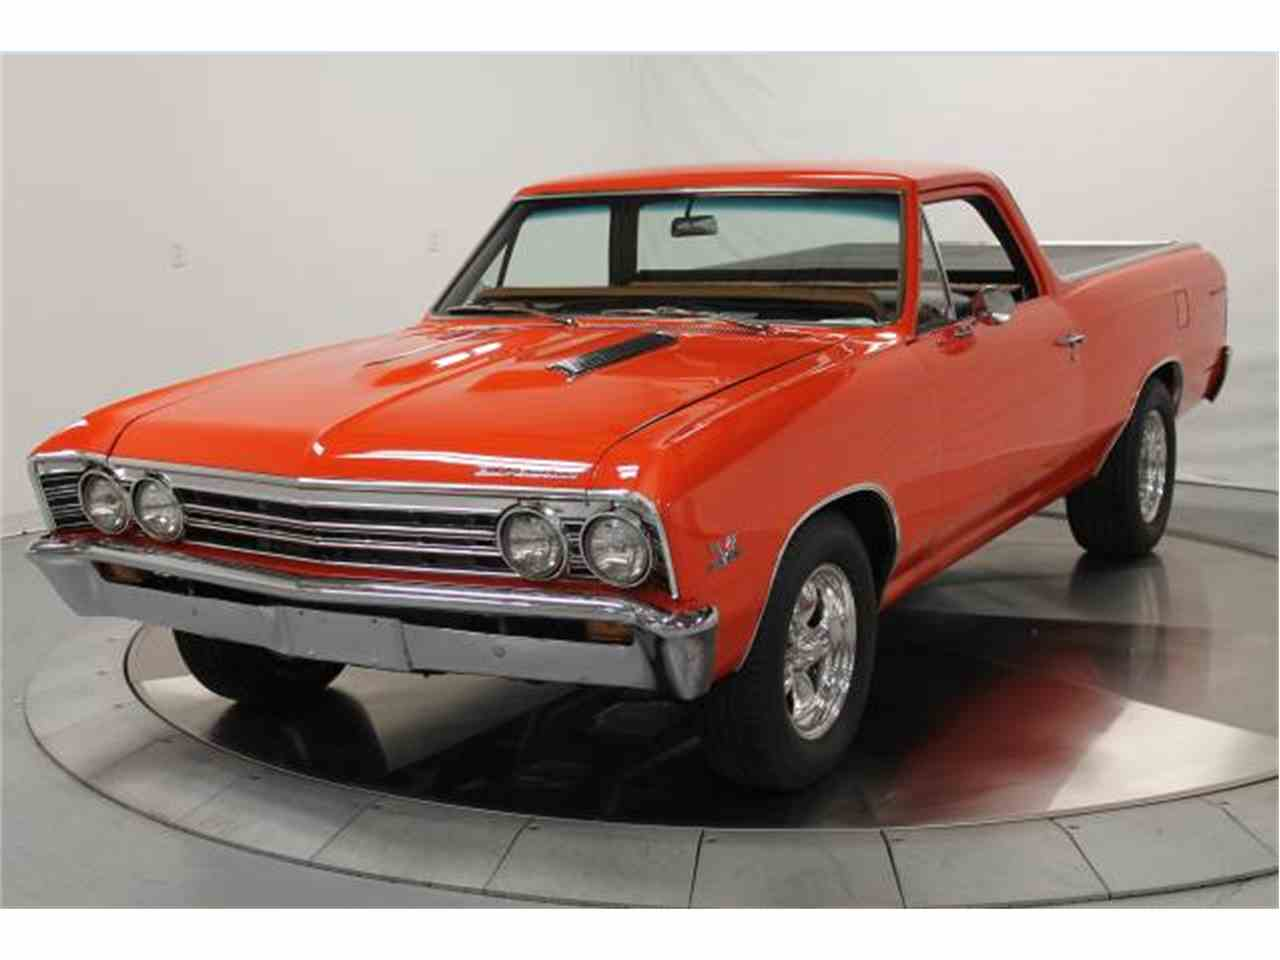 El Camino Classic Car For Sale